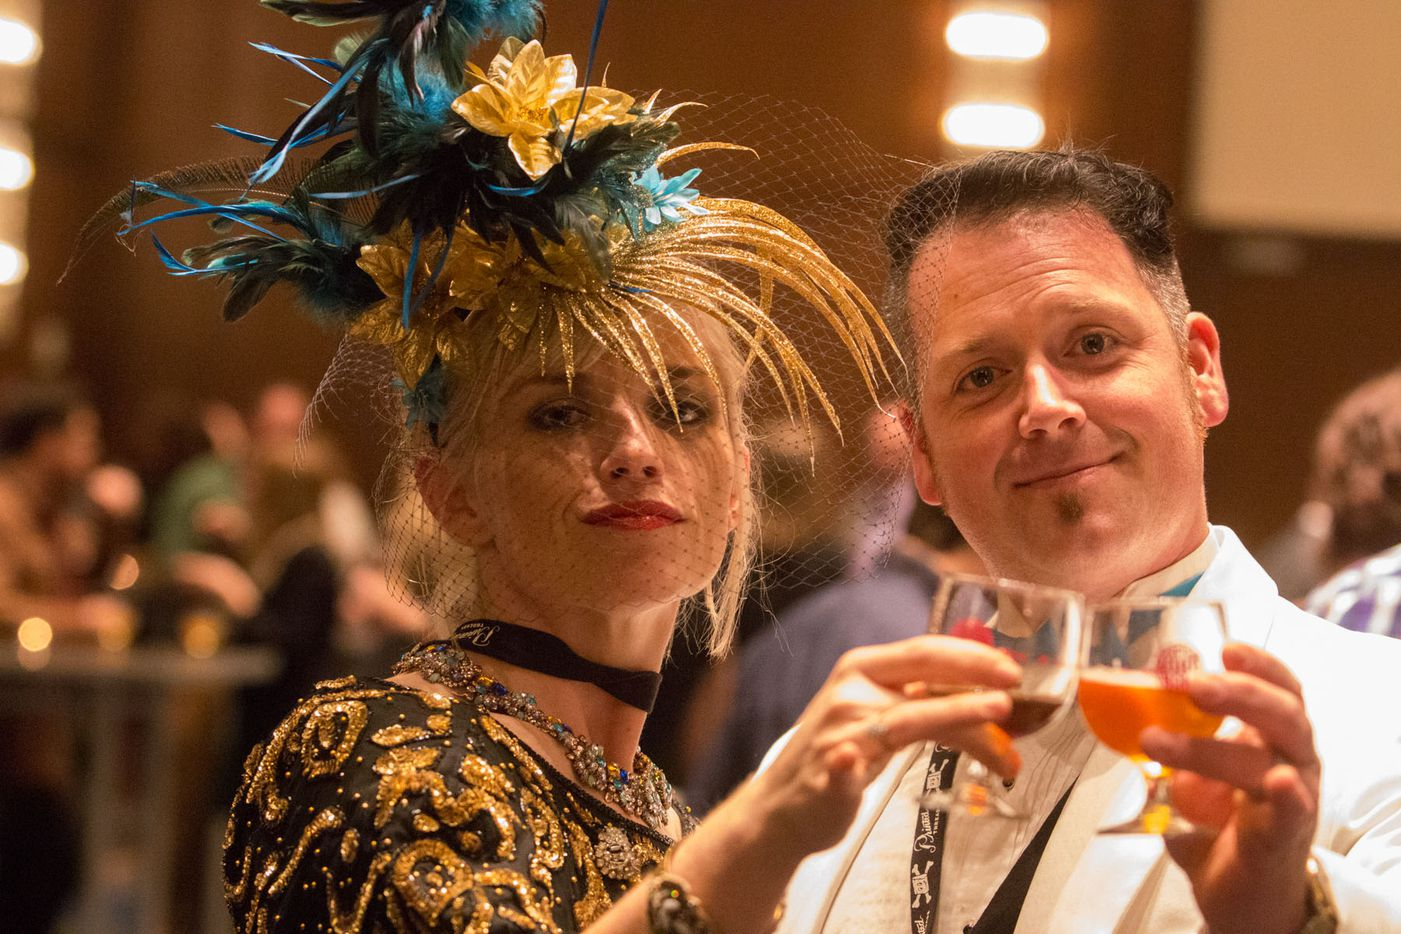 NTX Beer Week held its Second Annual Brewers Ball at the Renaissance Dallas Hotel on November 13, 2015. Michelle and David Muckian.